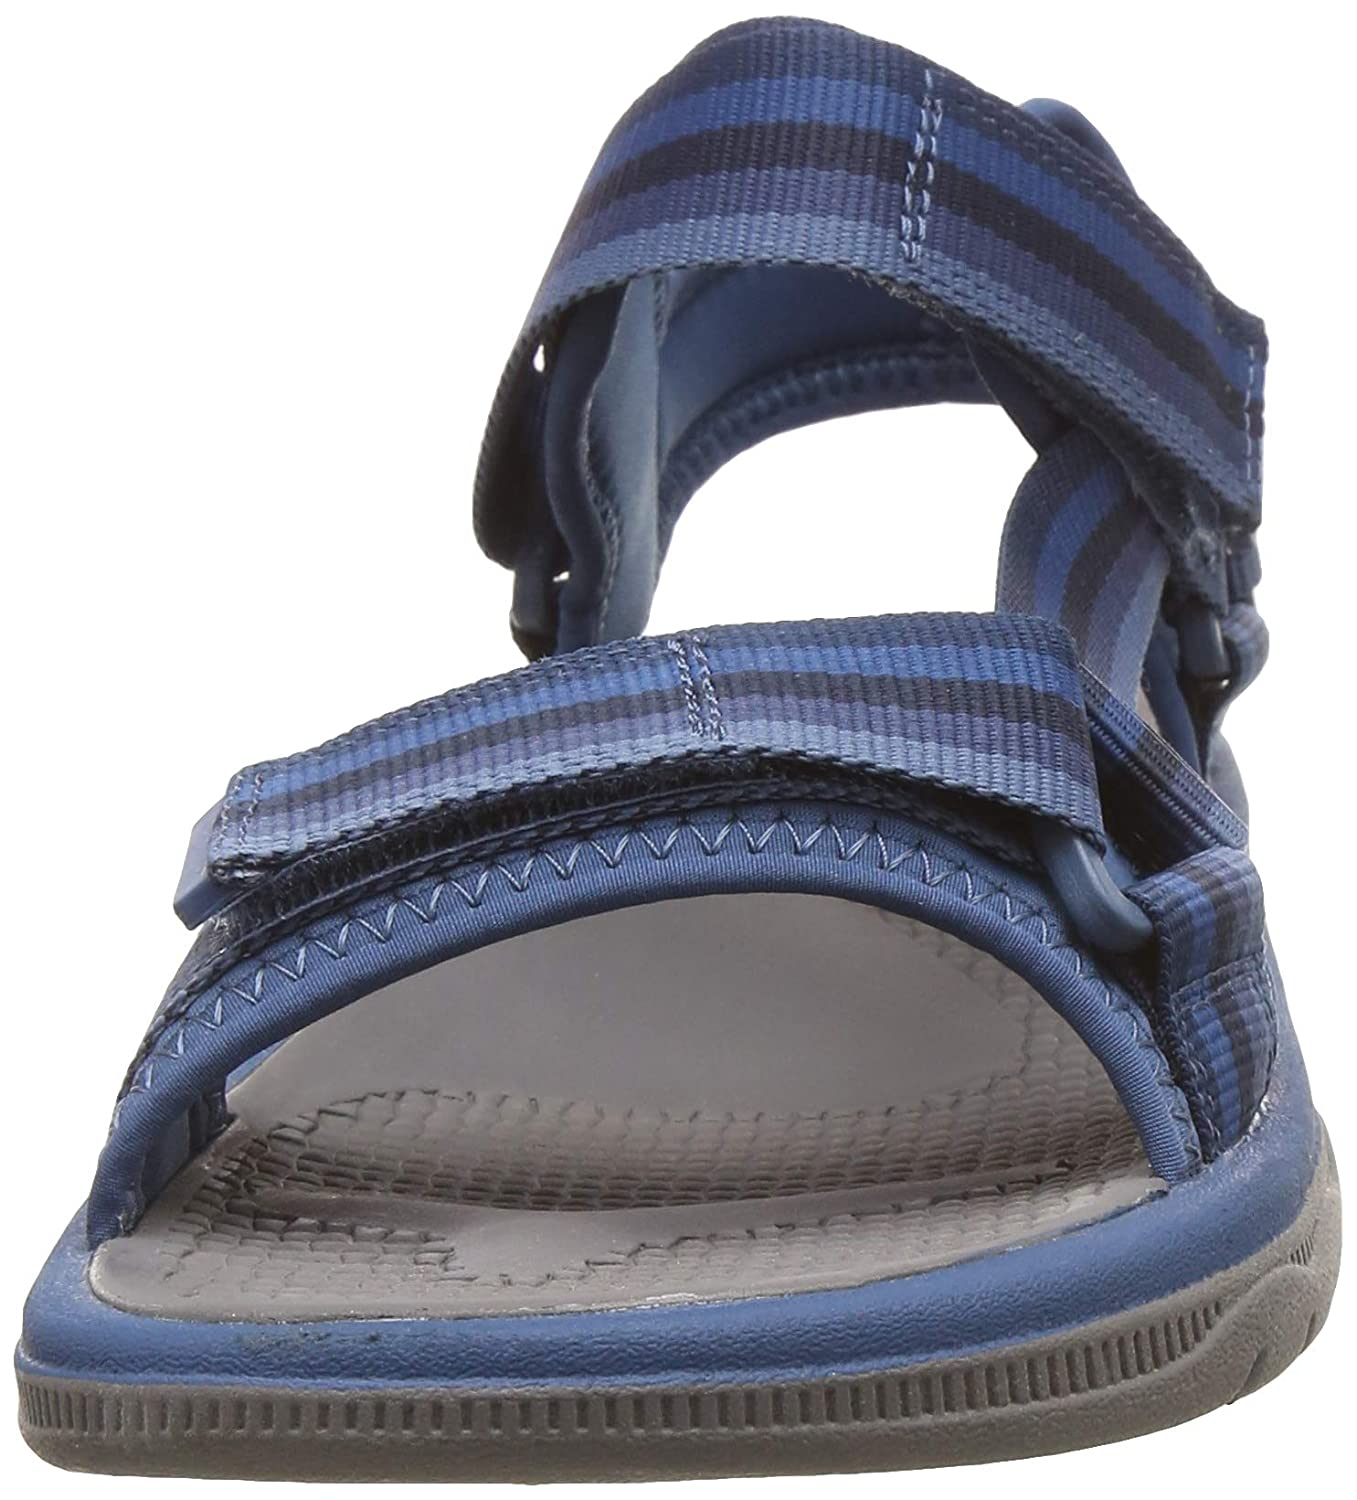 13fbab1c7e83 Clarks Men s Balta Reef Floaters  Buy Online at Low Prices in India -  Amazon.in